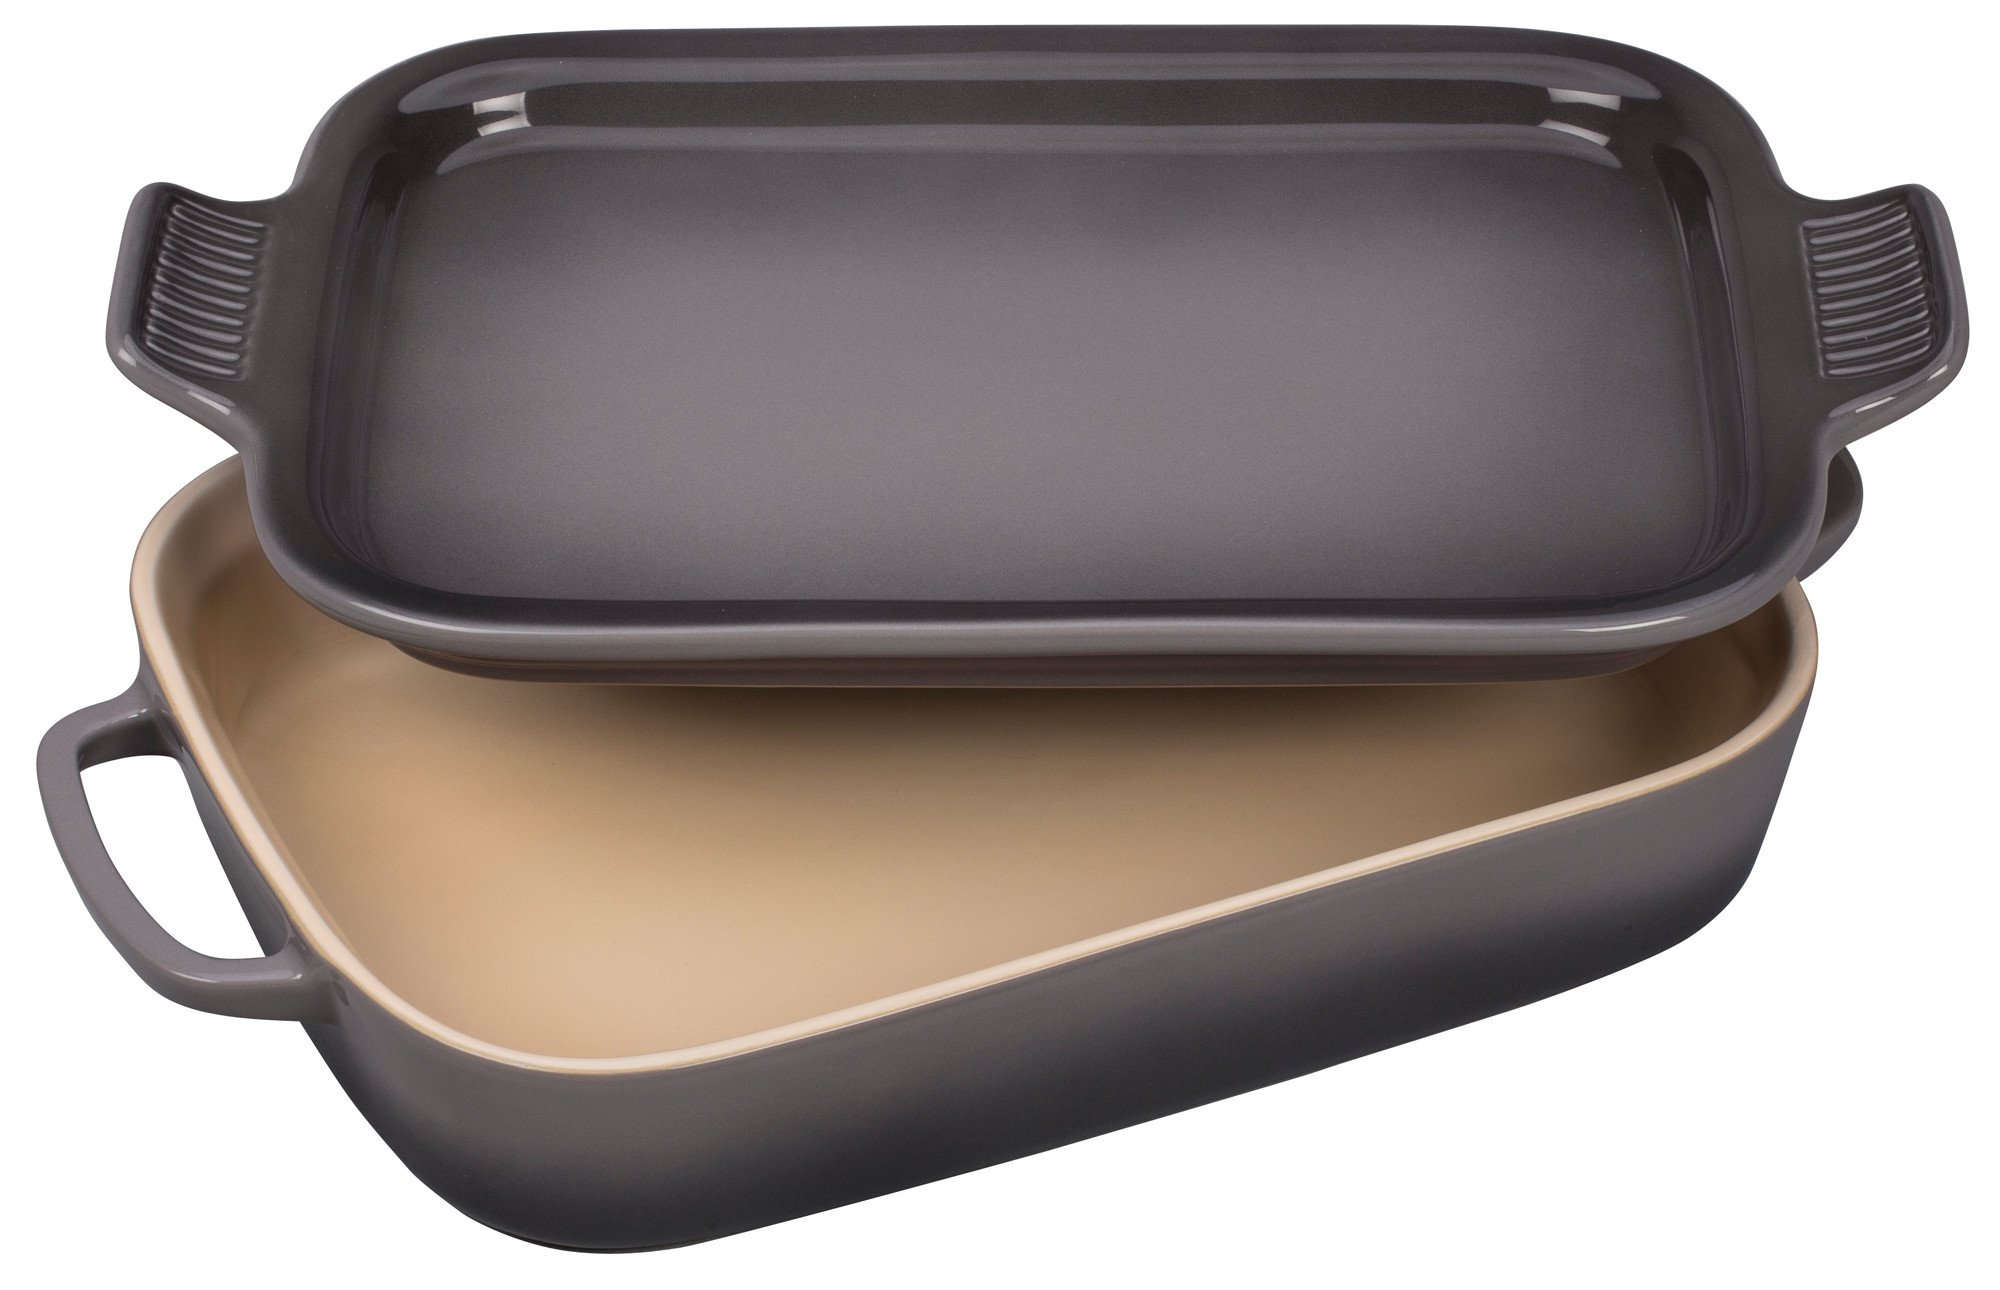 Le Creuset Stoneware Rectangular Dish with Platter Lid, 14 3/4x9x2 1/2 (2.75 qt.), Oyster